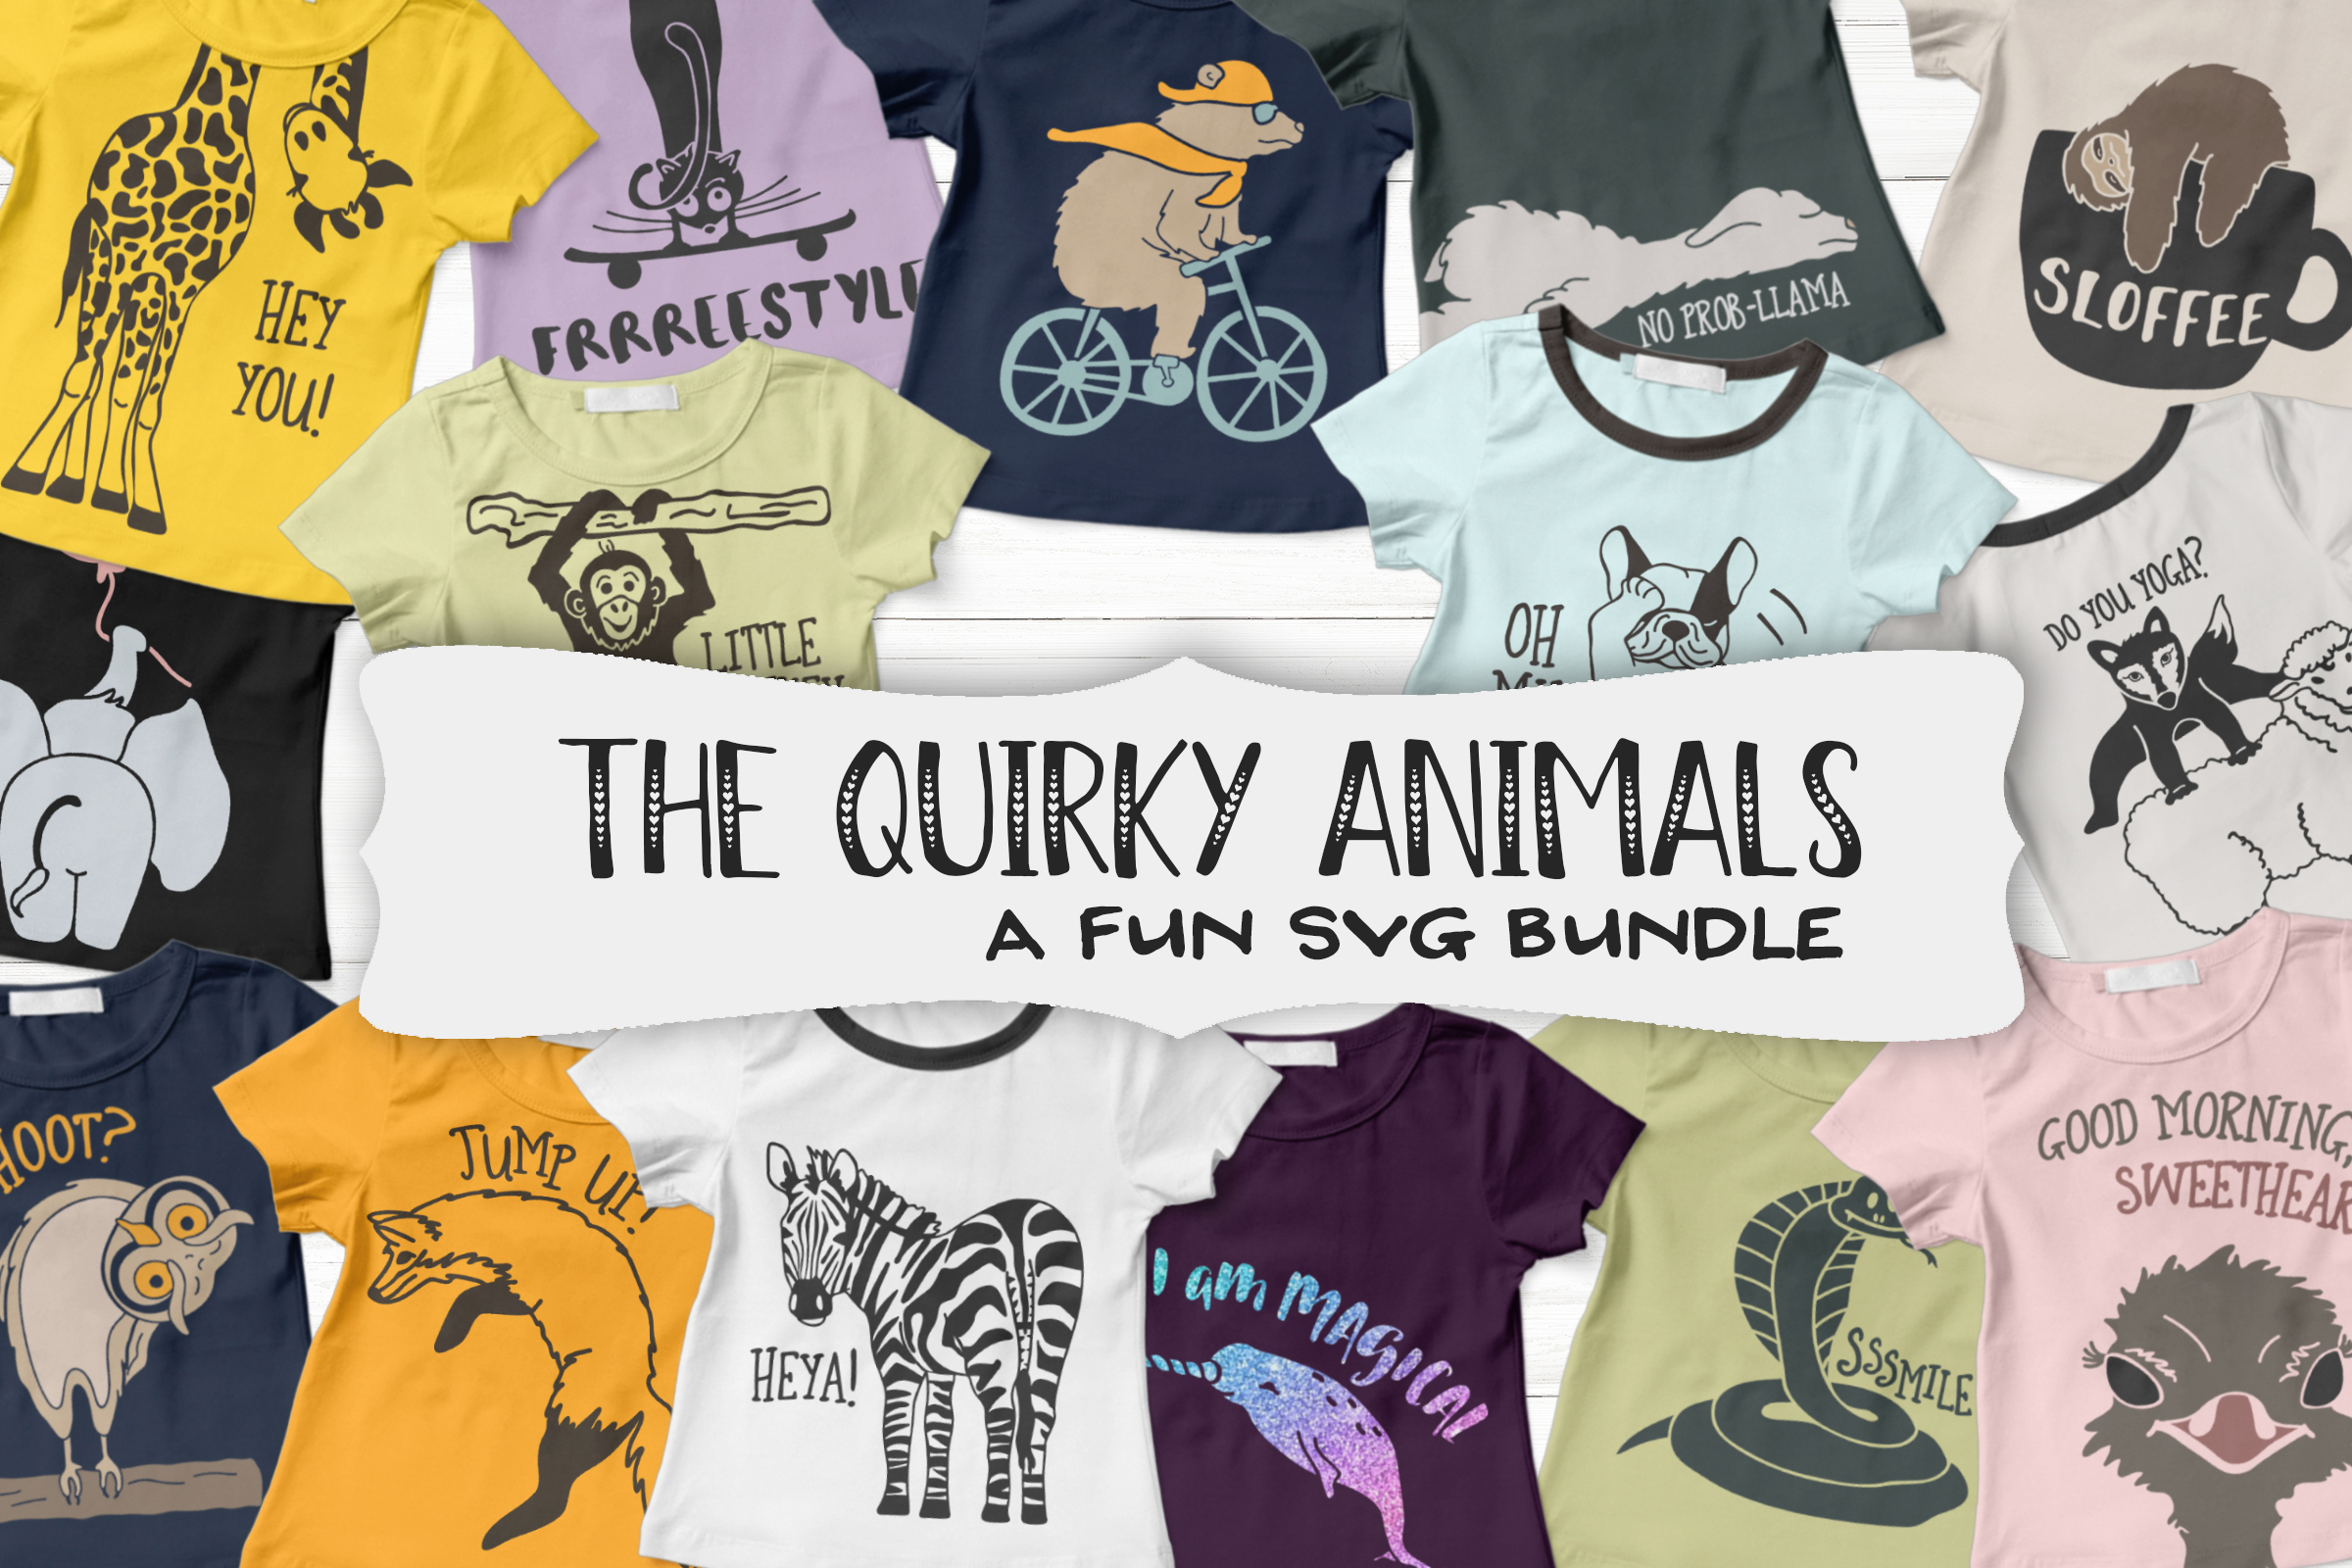 The Quirky Animals | Funny SVG Bundle example image 3